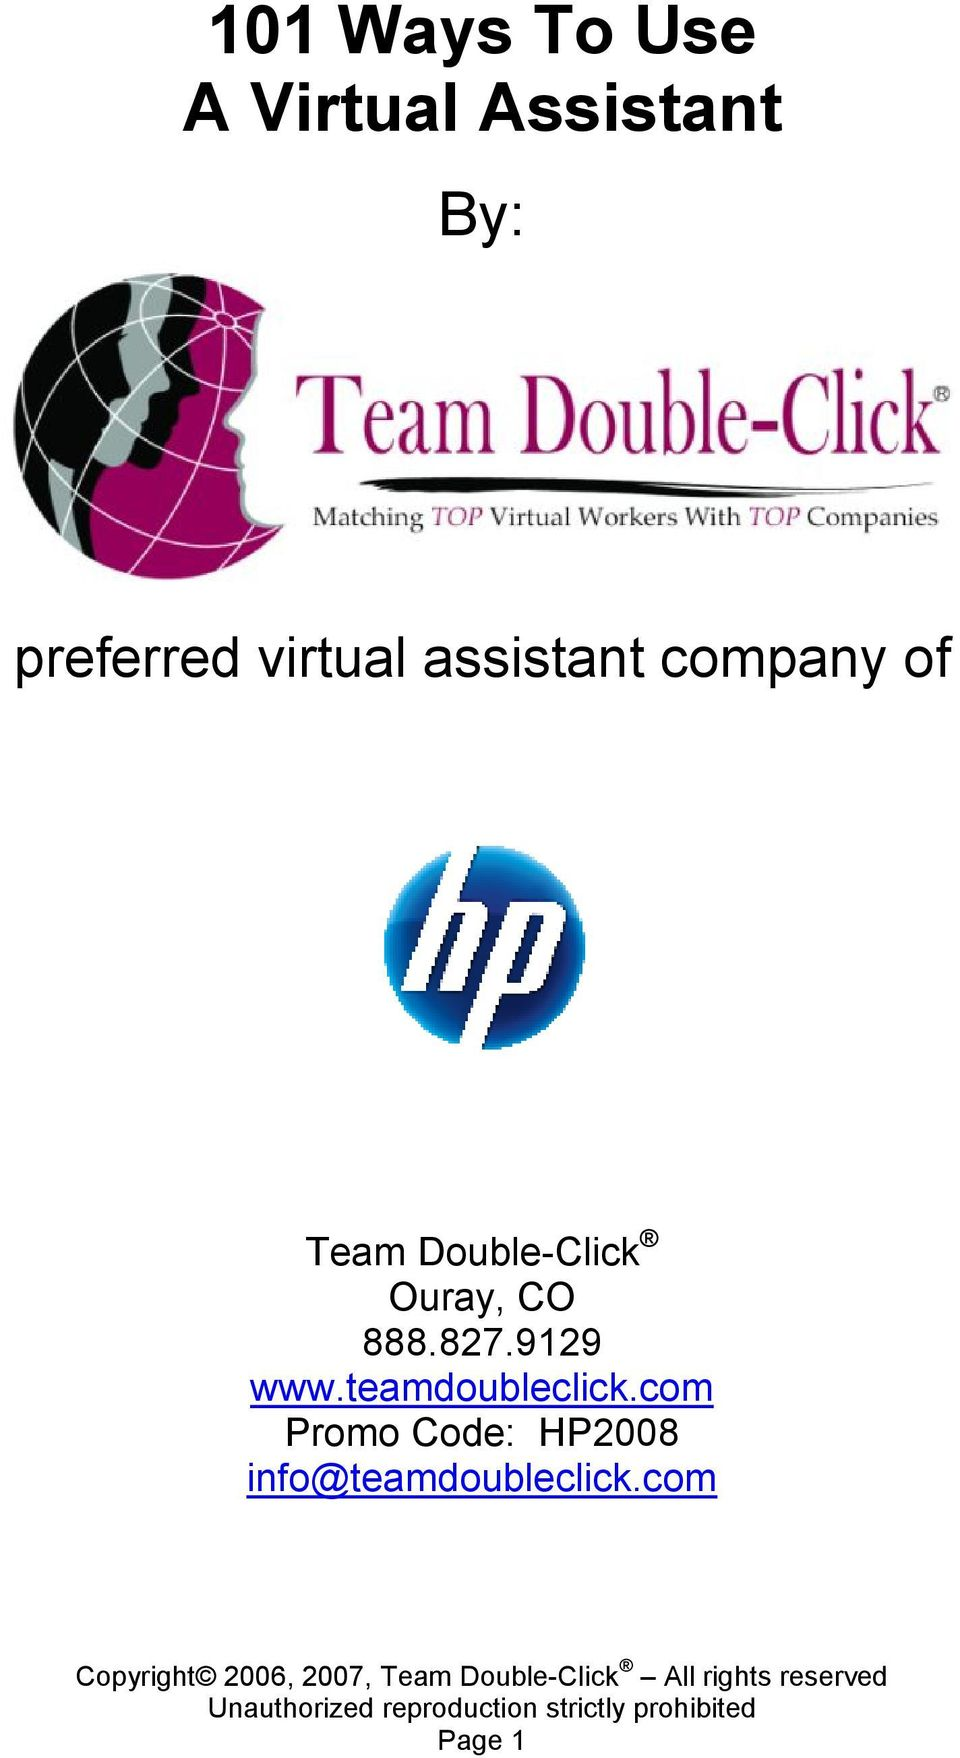 Double-Click Ouray, CO 888.827.9129 www.